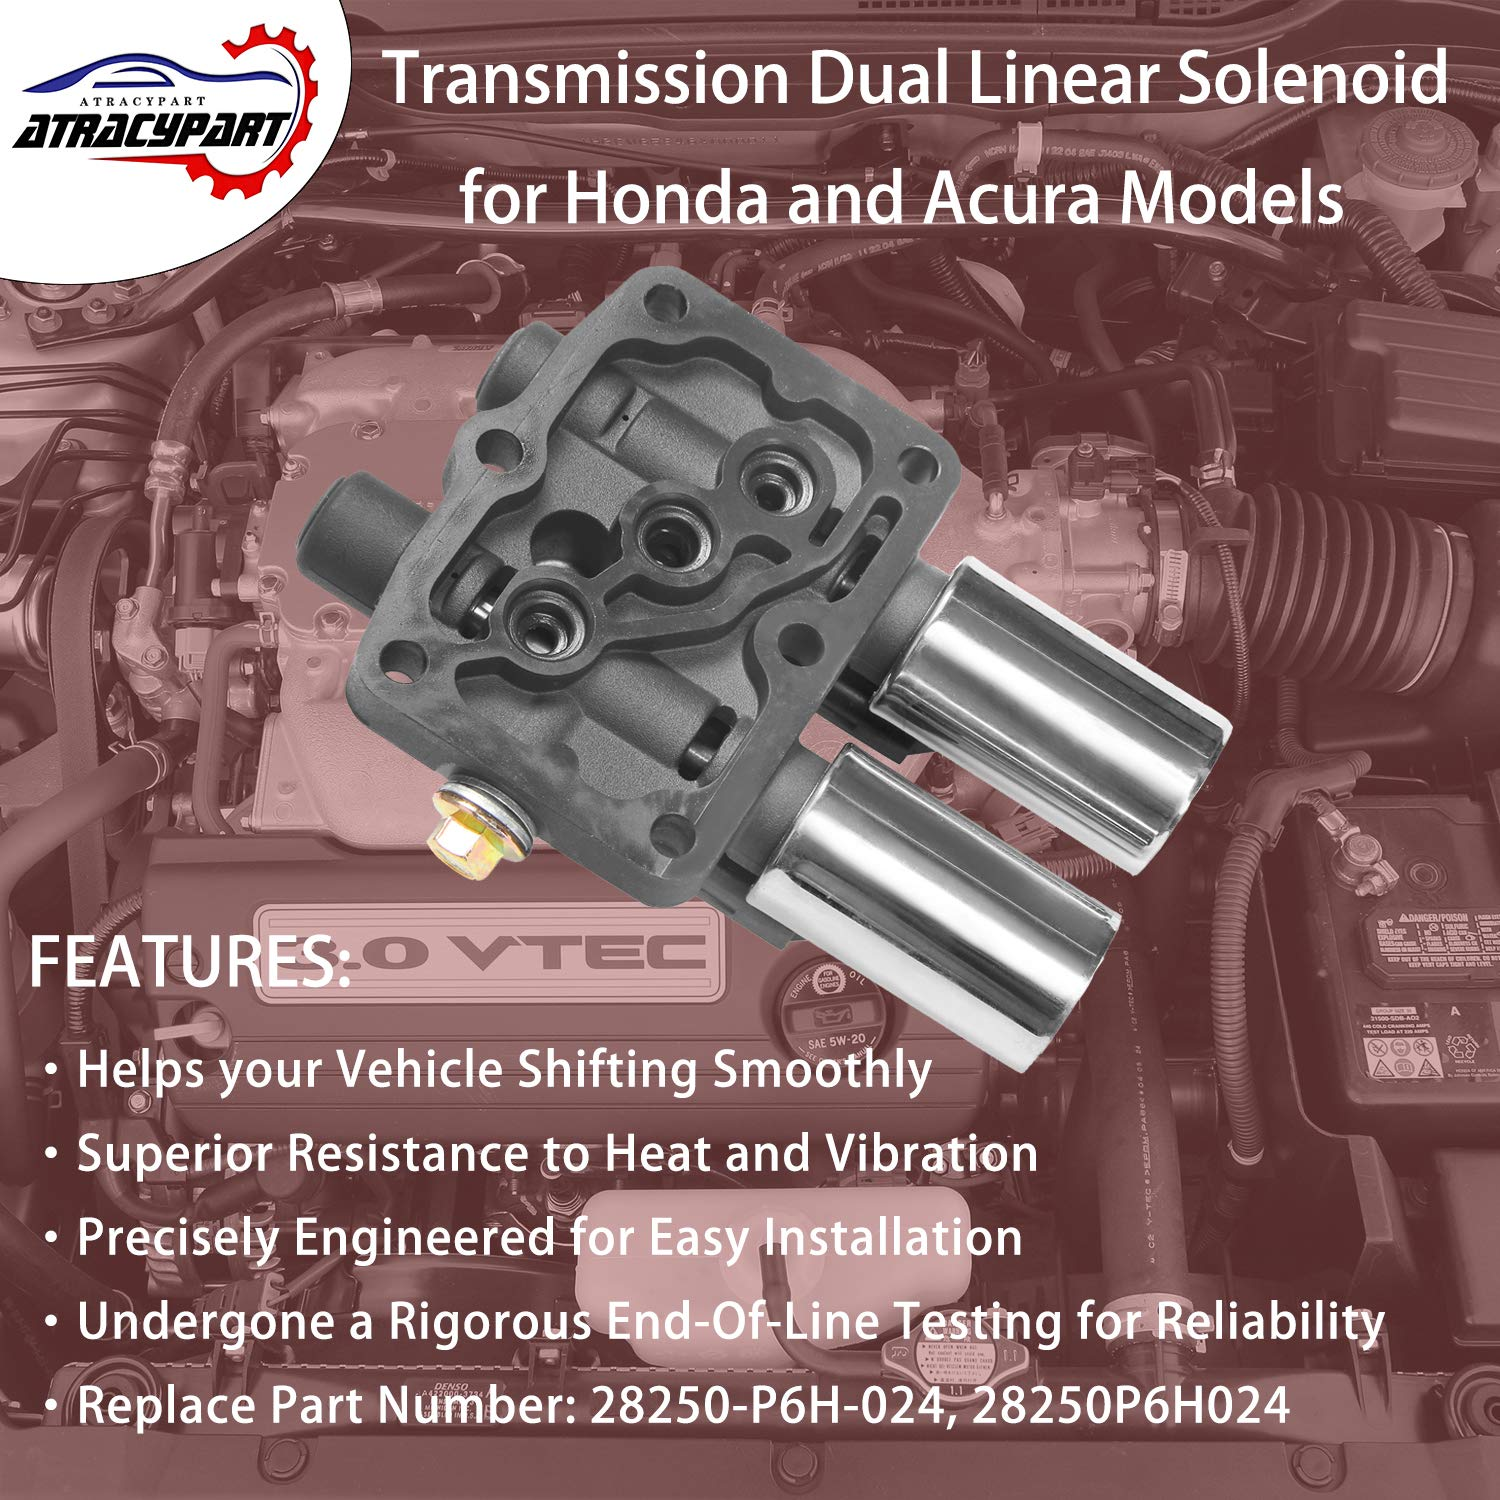 Transmission Dual Linear Solenoid with 1PCS Gasket and 3PCS O-Rings 28250P6H024 for Honda Accord Odyssey Pilot Prelude Acura CL TL MDX Replaces# 28250-P6H-024